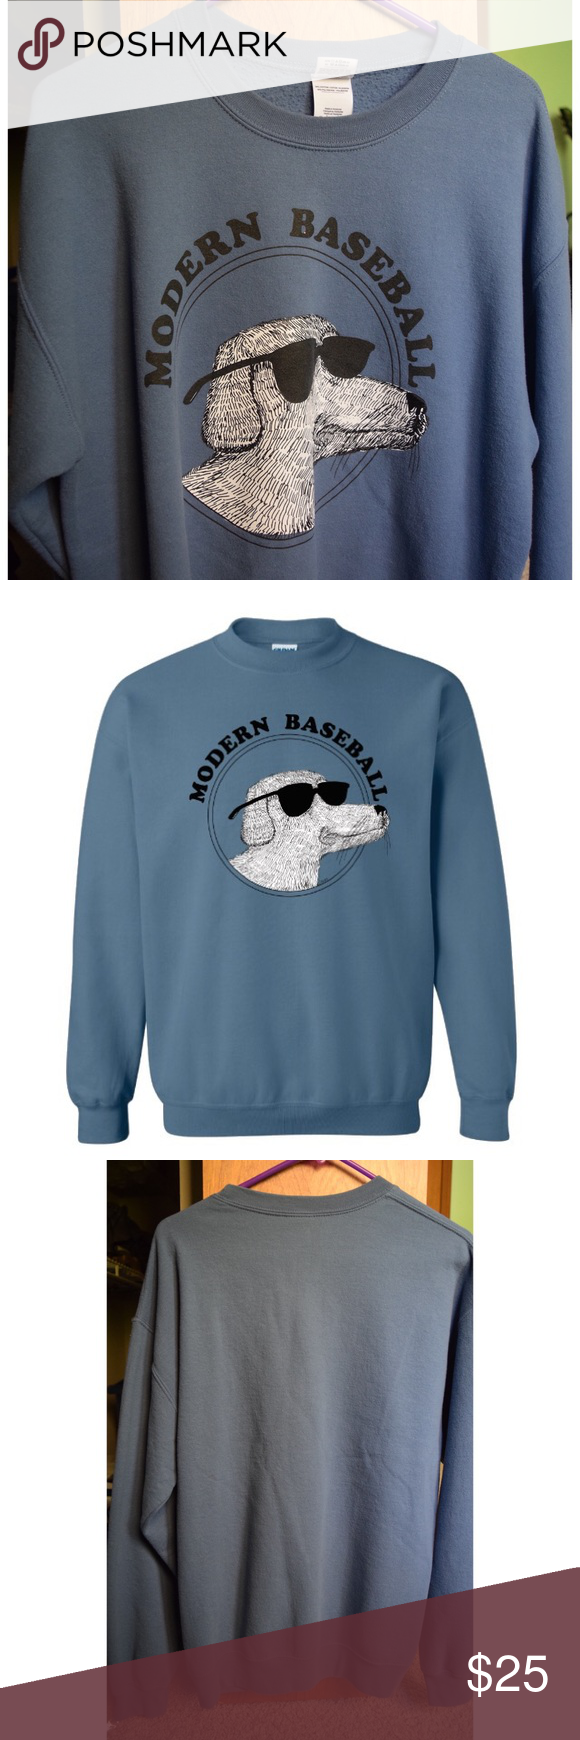 Modern Baseball Dog Crewneck Got It At The Modern Baseball The Front Bottoms Brand New Concert In Cleveland Haven Clothes Design Fashion Design Front Bottoms